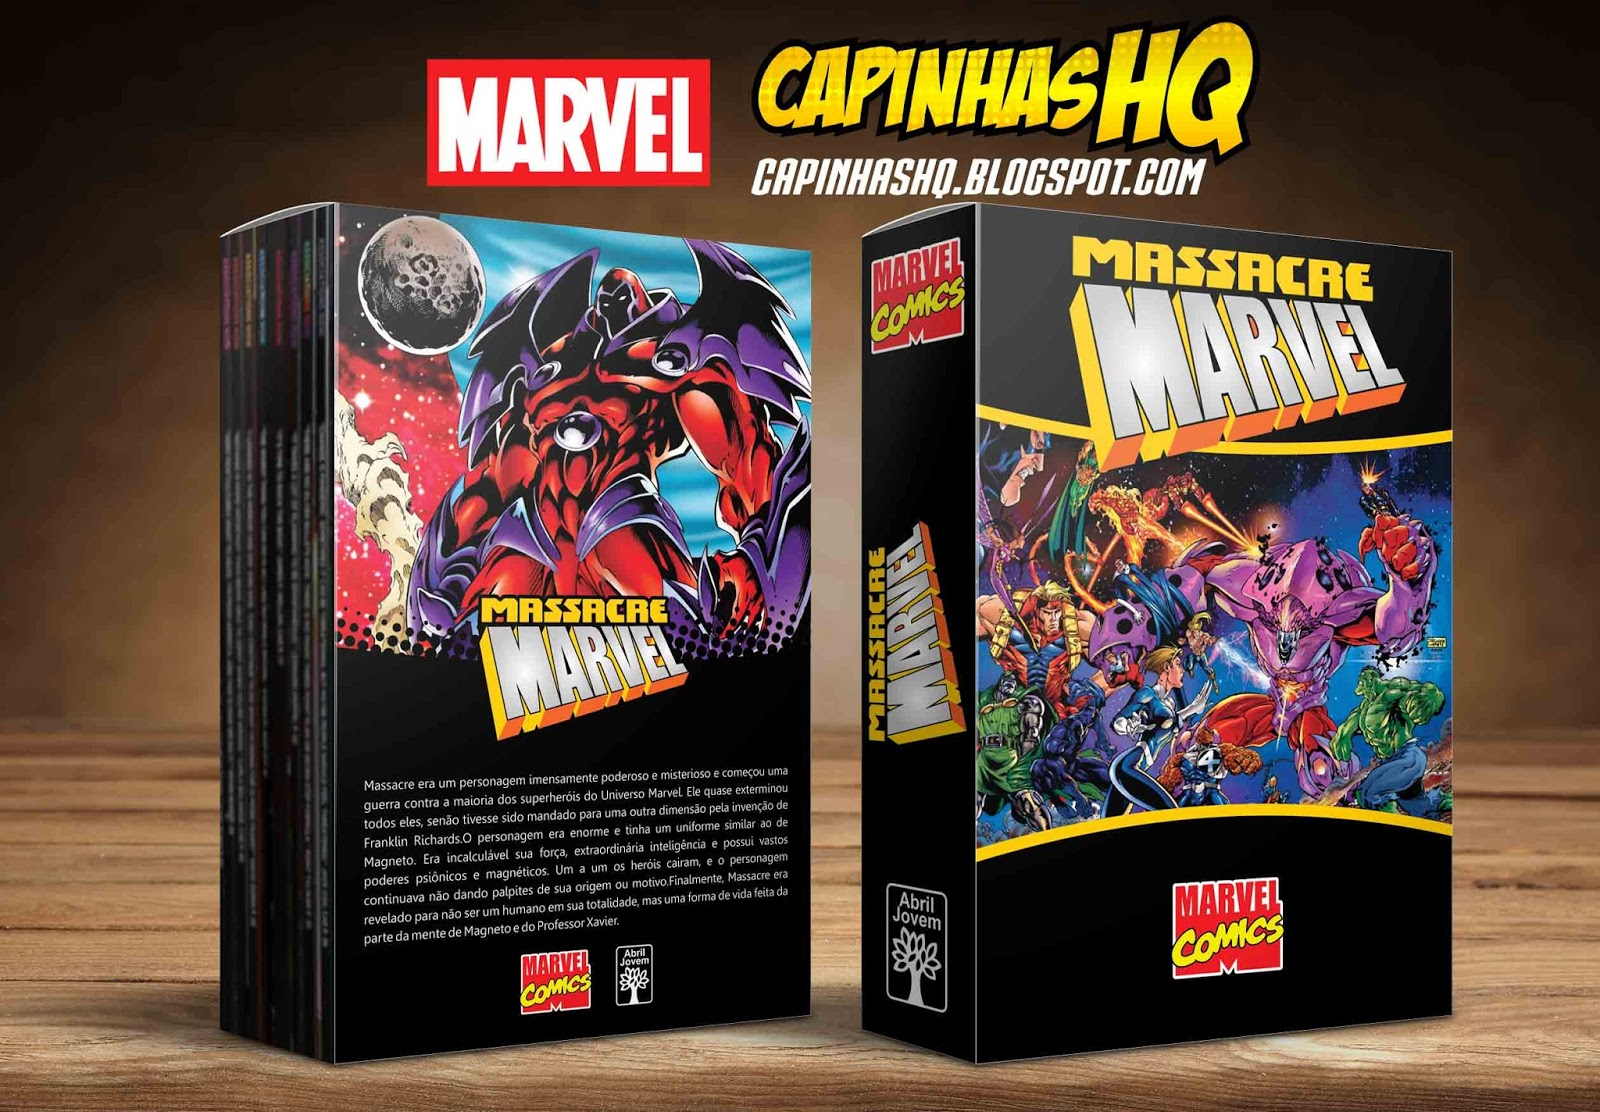 MASSACRE MARVEL 1